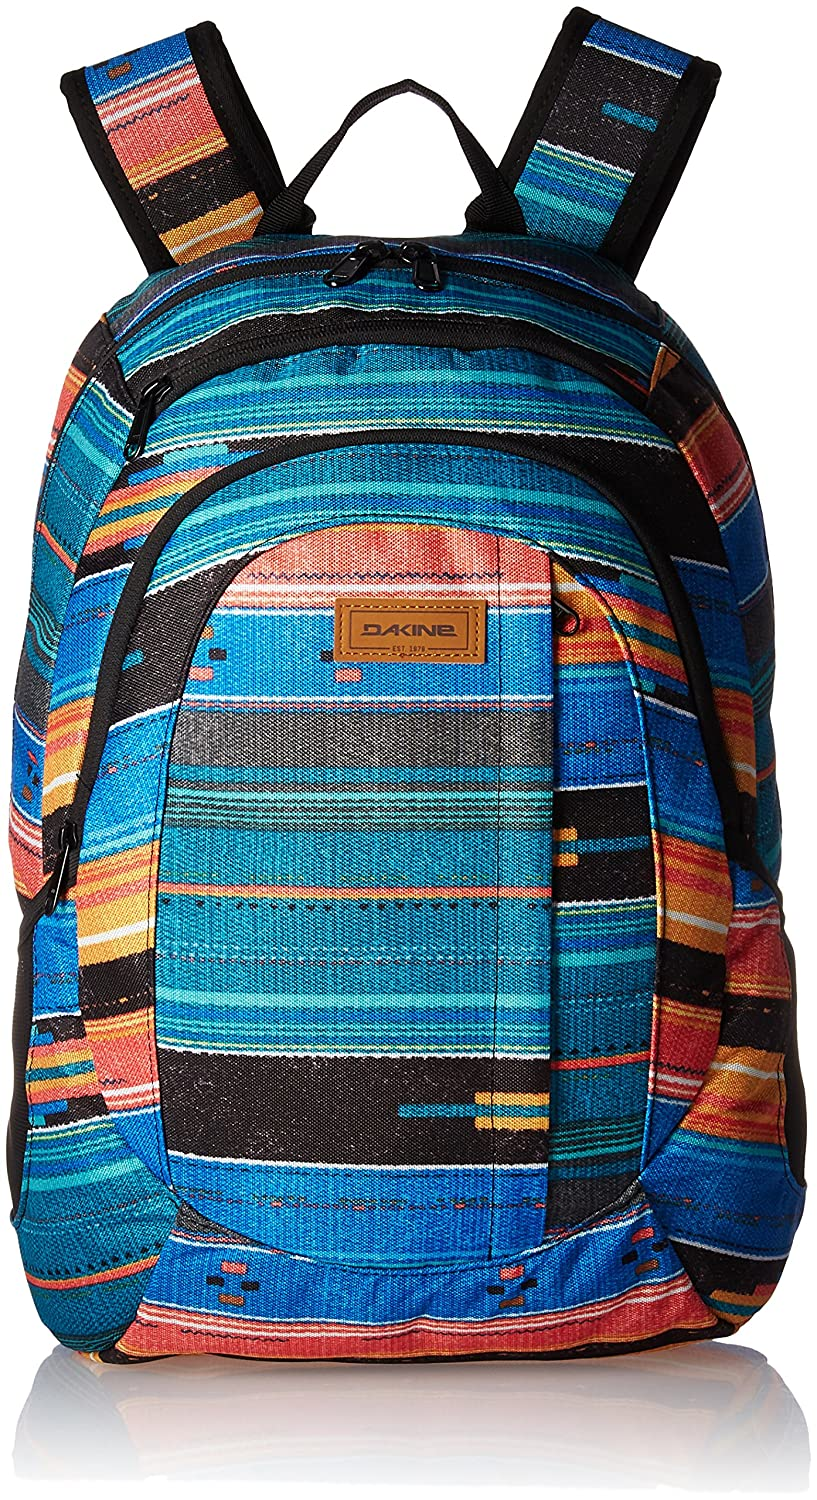 Dakine Women's Garden Backpack 4 8210050-Vera-P